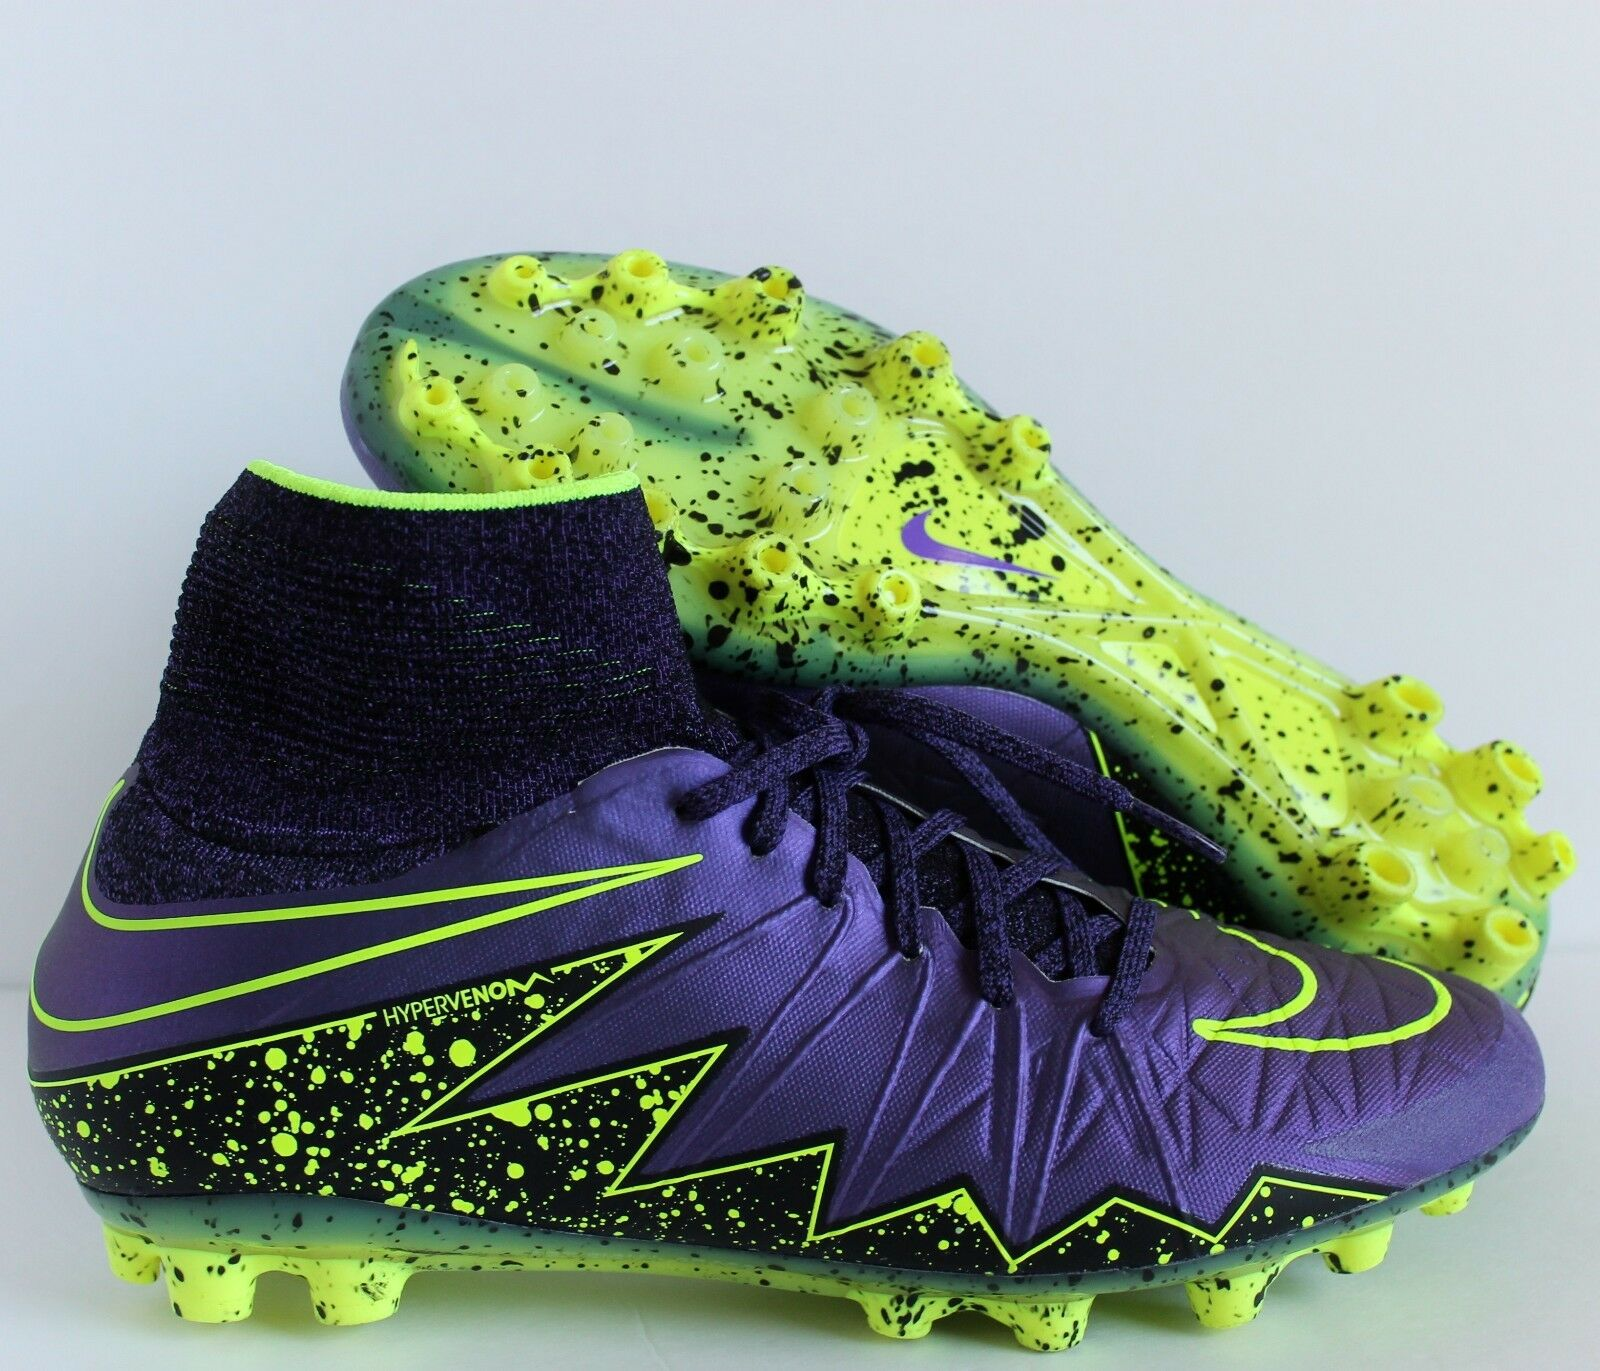 Nike hypervenom phantom sz ii 2 ag iper - grape-volt sz phantom 9 [747490-550] f74960